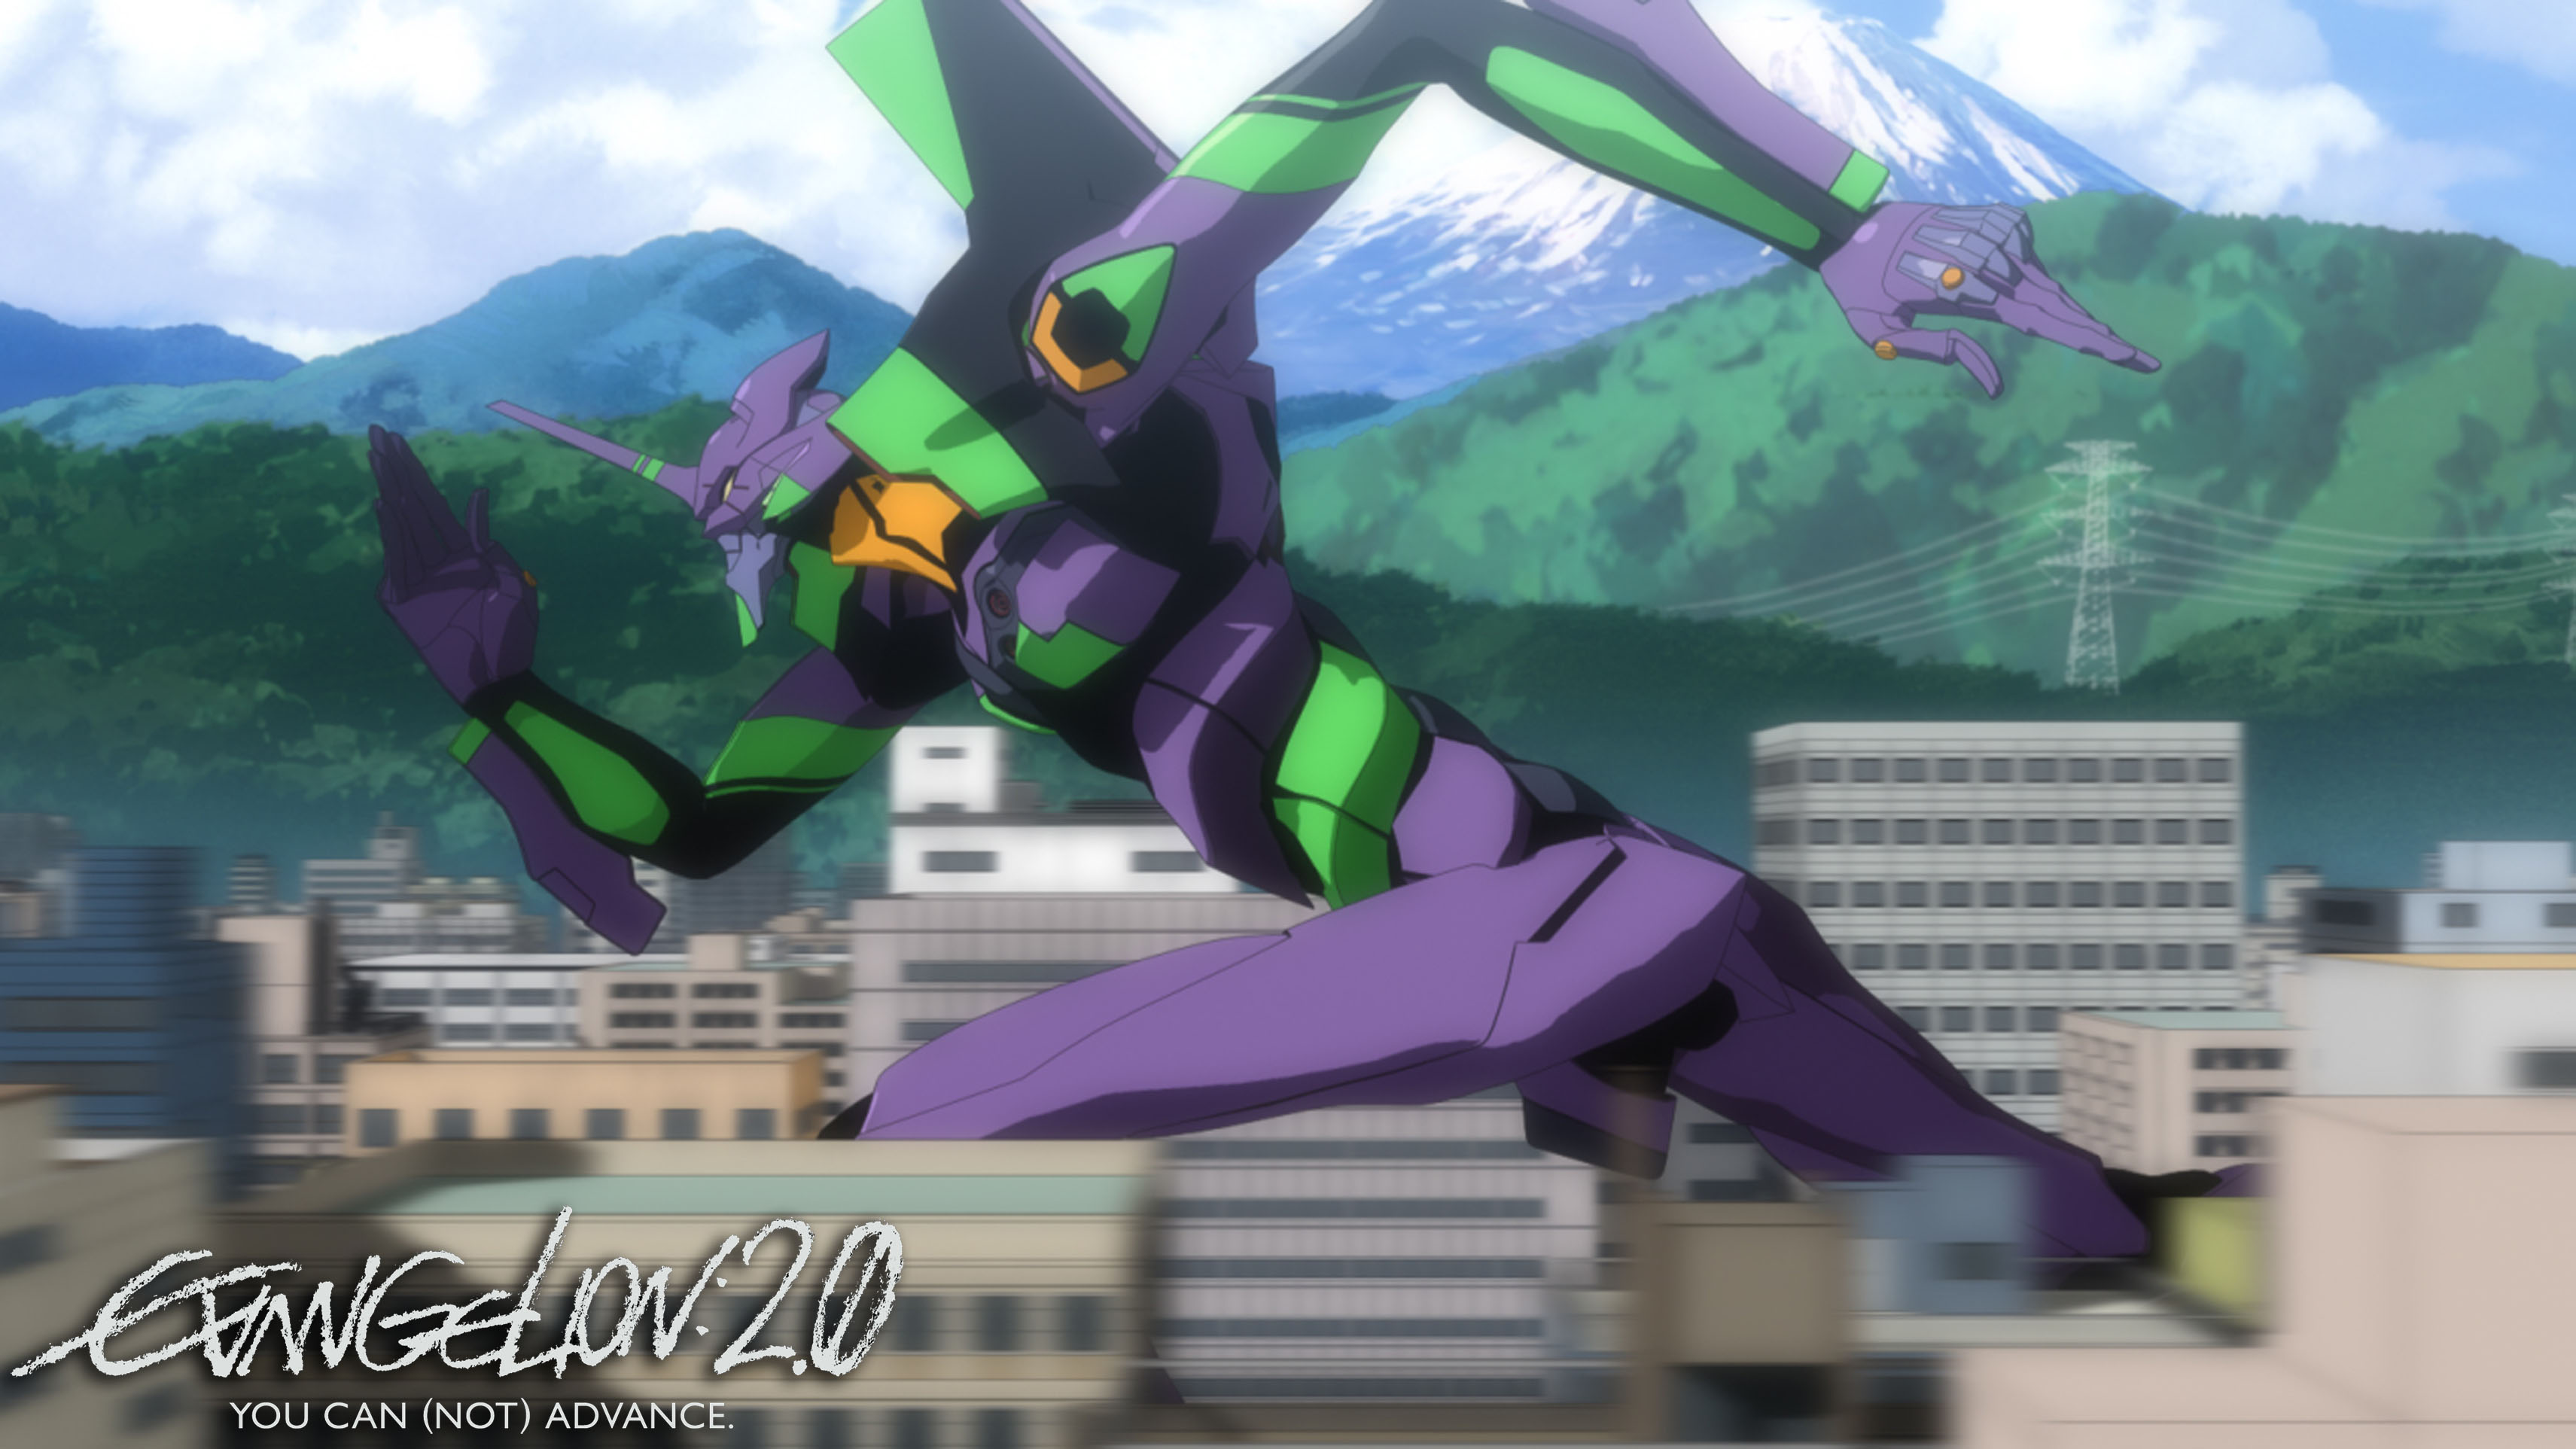 evangelion 2 you can not advance 01